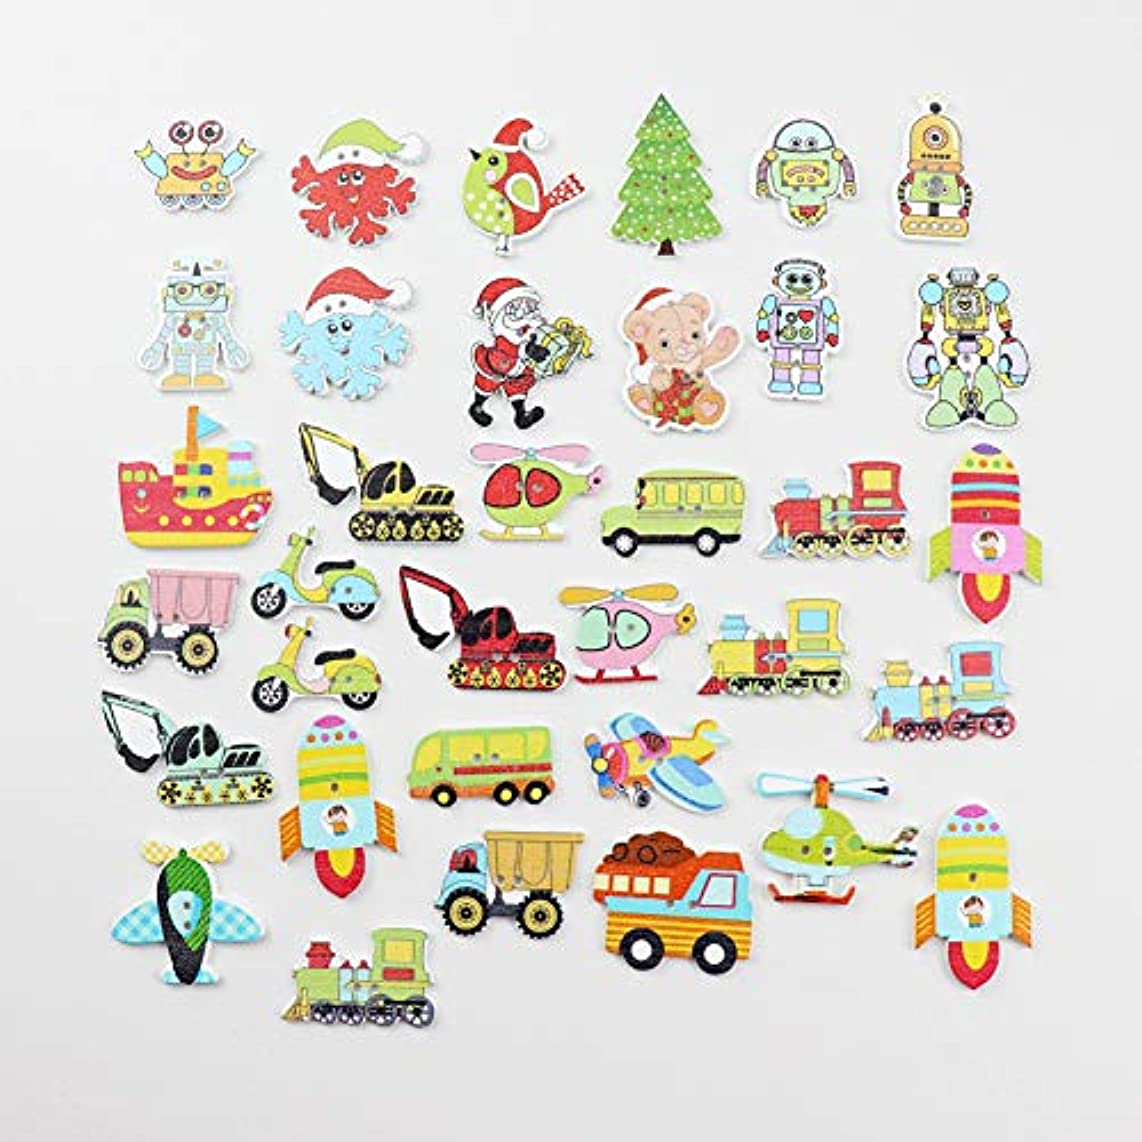 144 Packs Wooden Buttons with 2 Holes Christmas Robot Sewing for DIY Hanmade Craft Scrapbooking Garment Accessories (Christmas 1 Gross Pack)